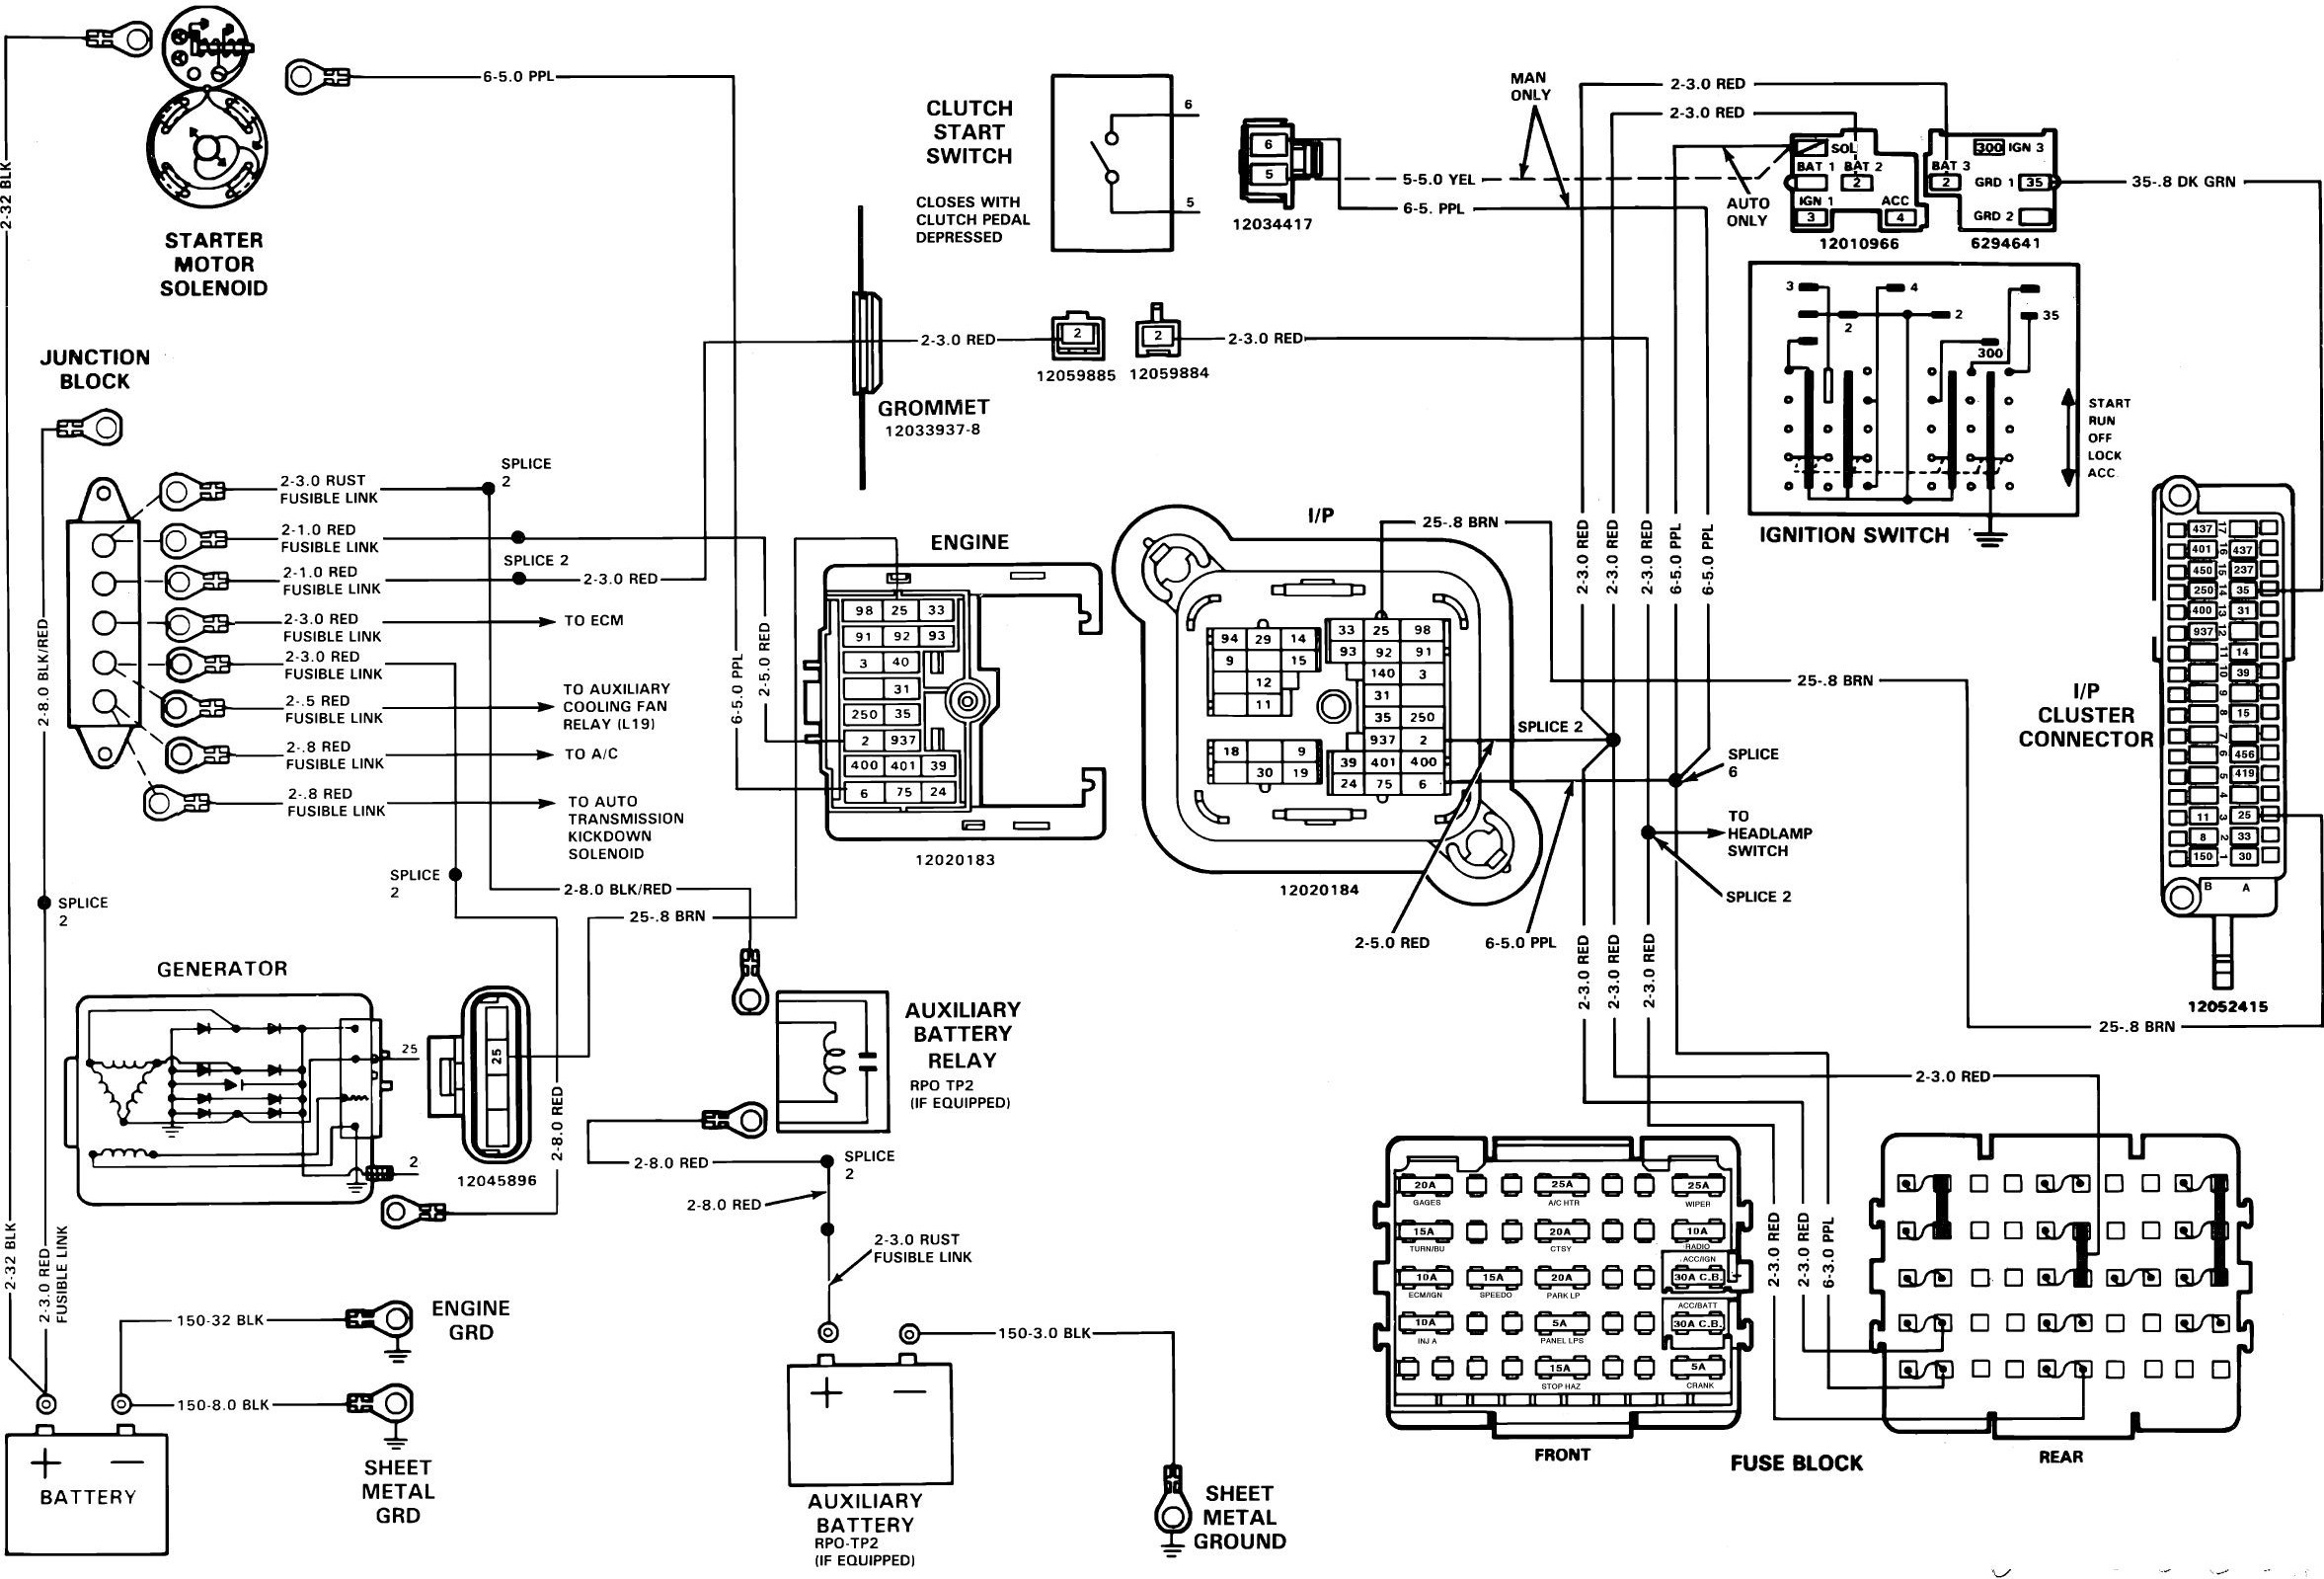 Engine Wiring Diagrams Diagram Sterling Truck 2003 Stereo 1989 Chevrolet C1500 Chevy 1500 Of